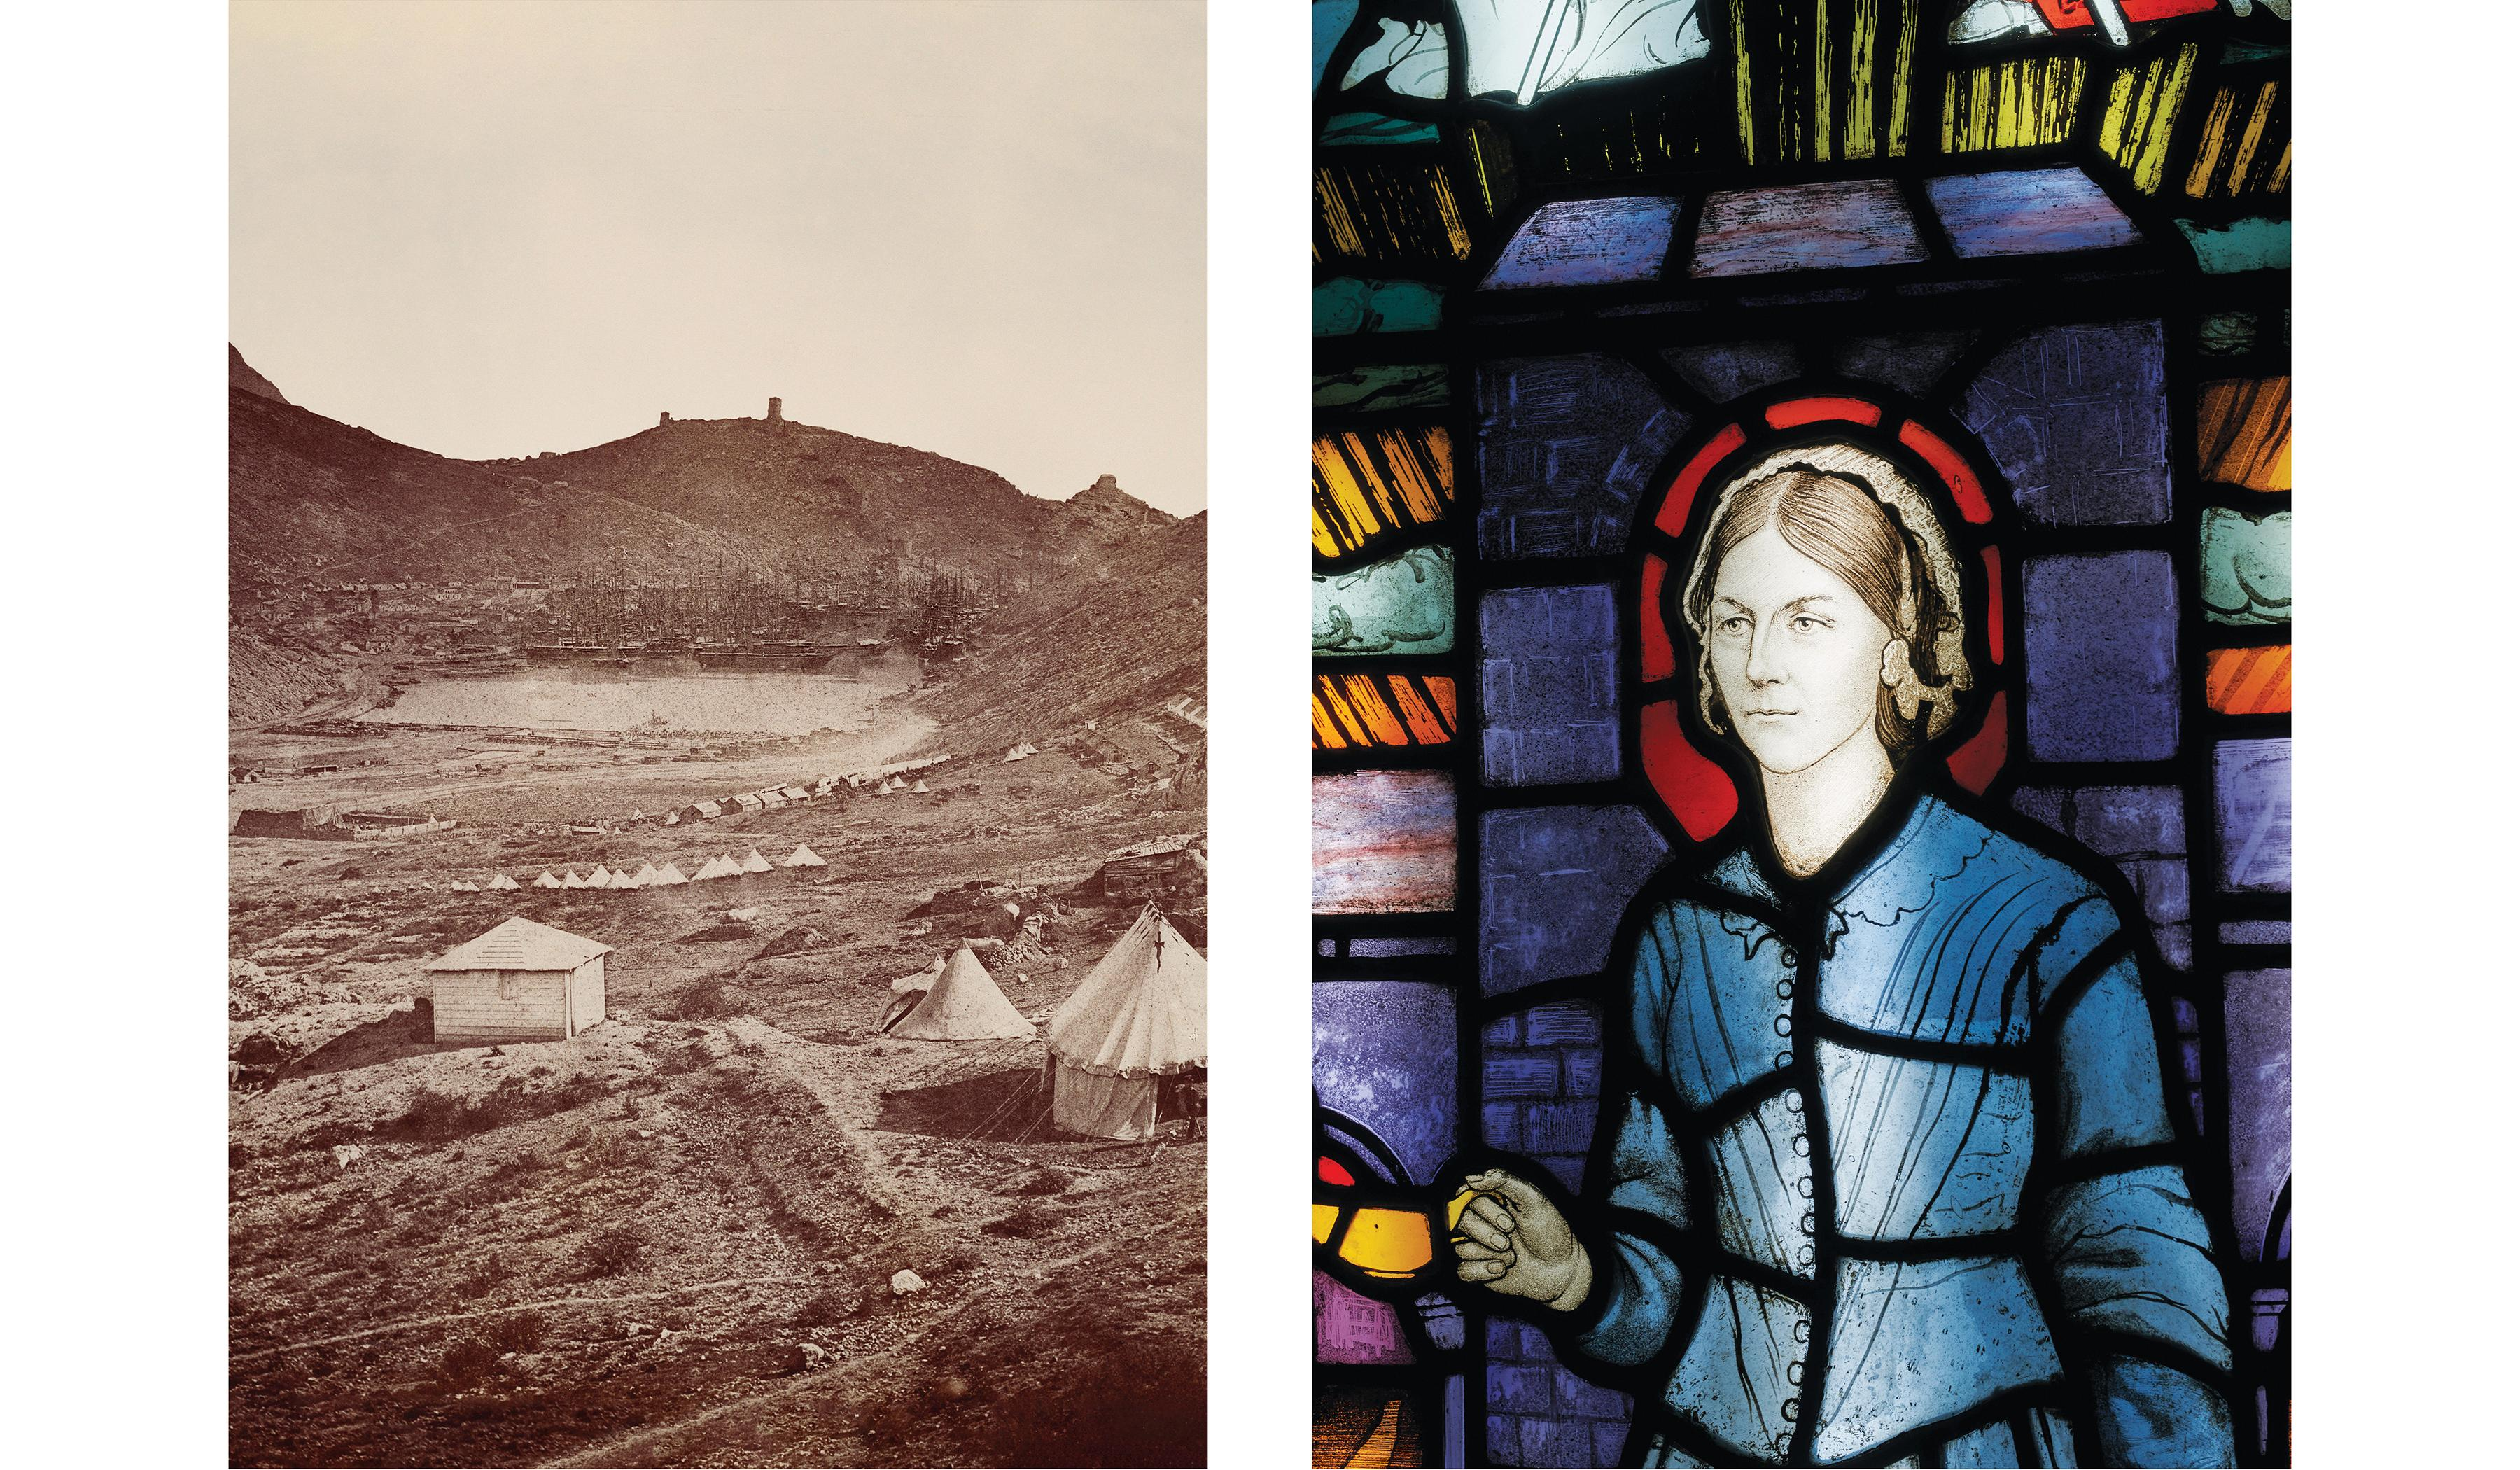 Left, the British Army camped at Balaklava in the Crimea. Right, an angelic Nightingale animates a stained glass window crafted around 1930.